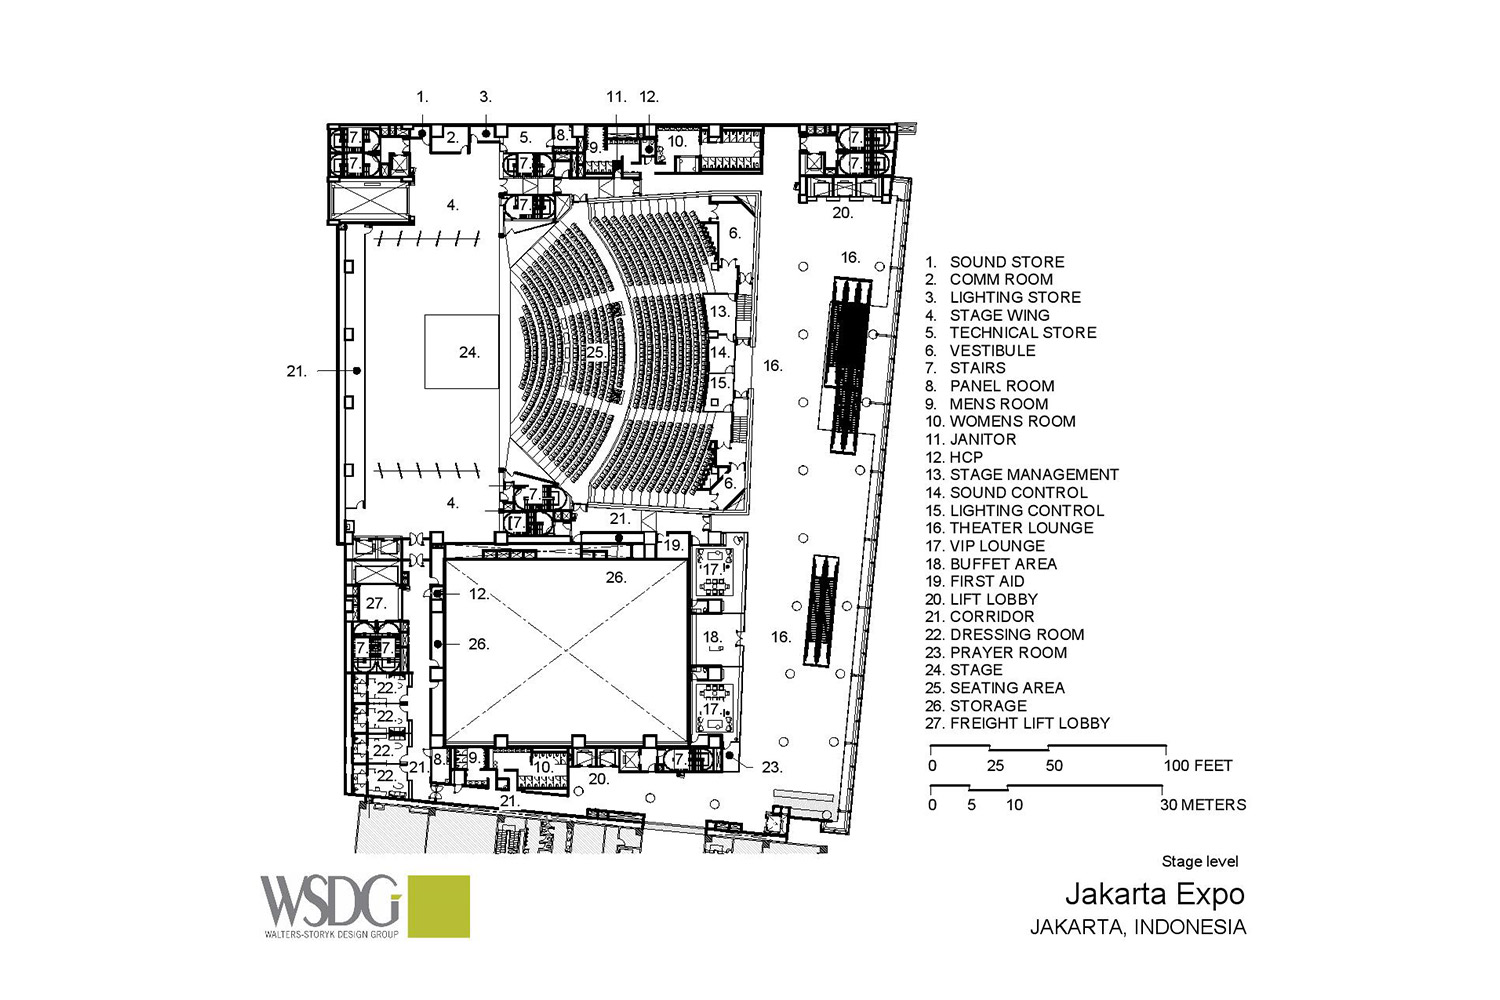 The new Convention Centre and Theatre at Jakarta International Expo (JIExpo) complex will be one of the largest and most forward thinking convention and entertainment centers in Indonesia. WSDG was called to to create an acoustic environment conducive to world-class acoustical standards throughout the complex. Presentation Drawing 1